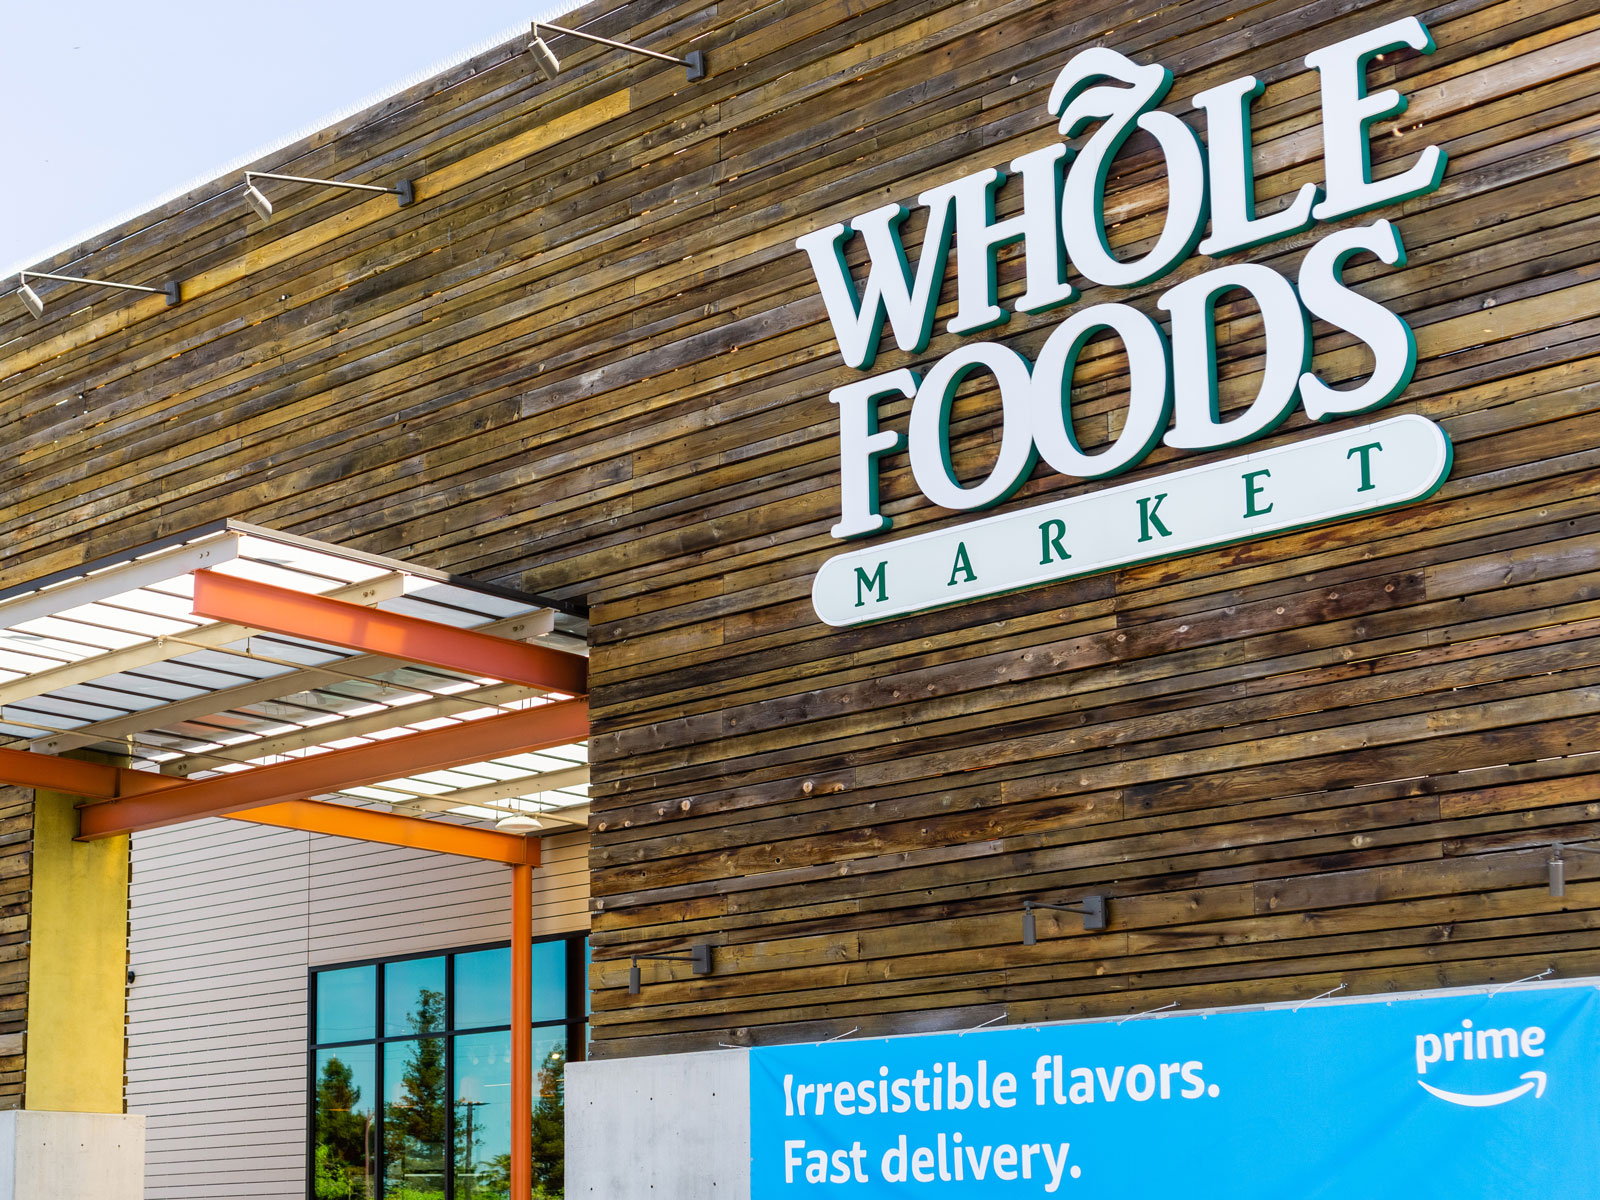 Whole Foods Prices Are Lower, Despite Fluctuations